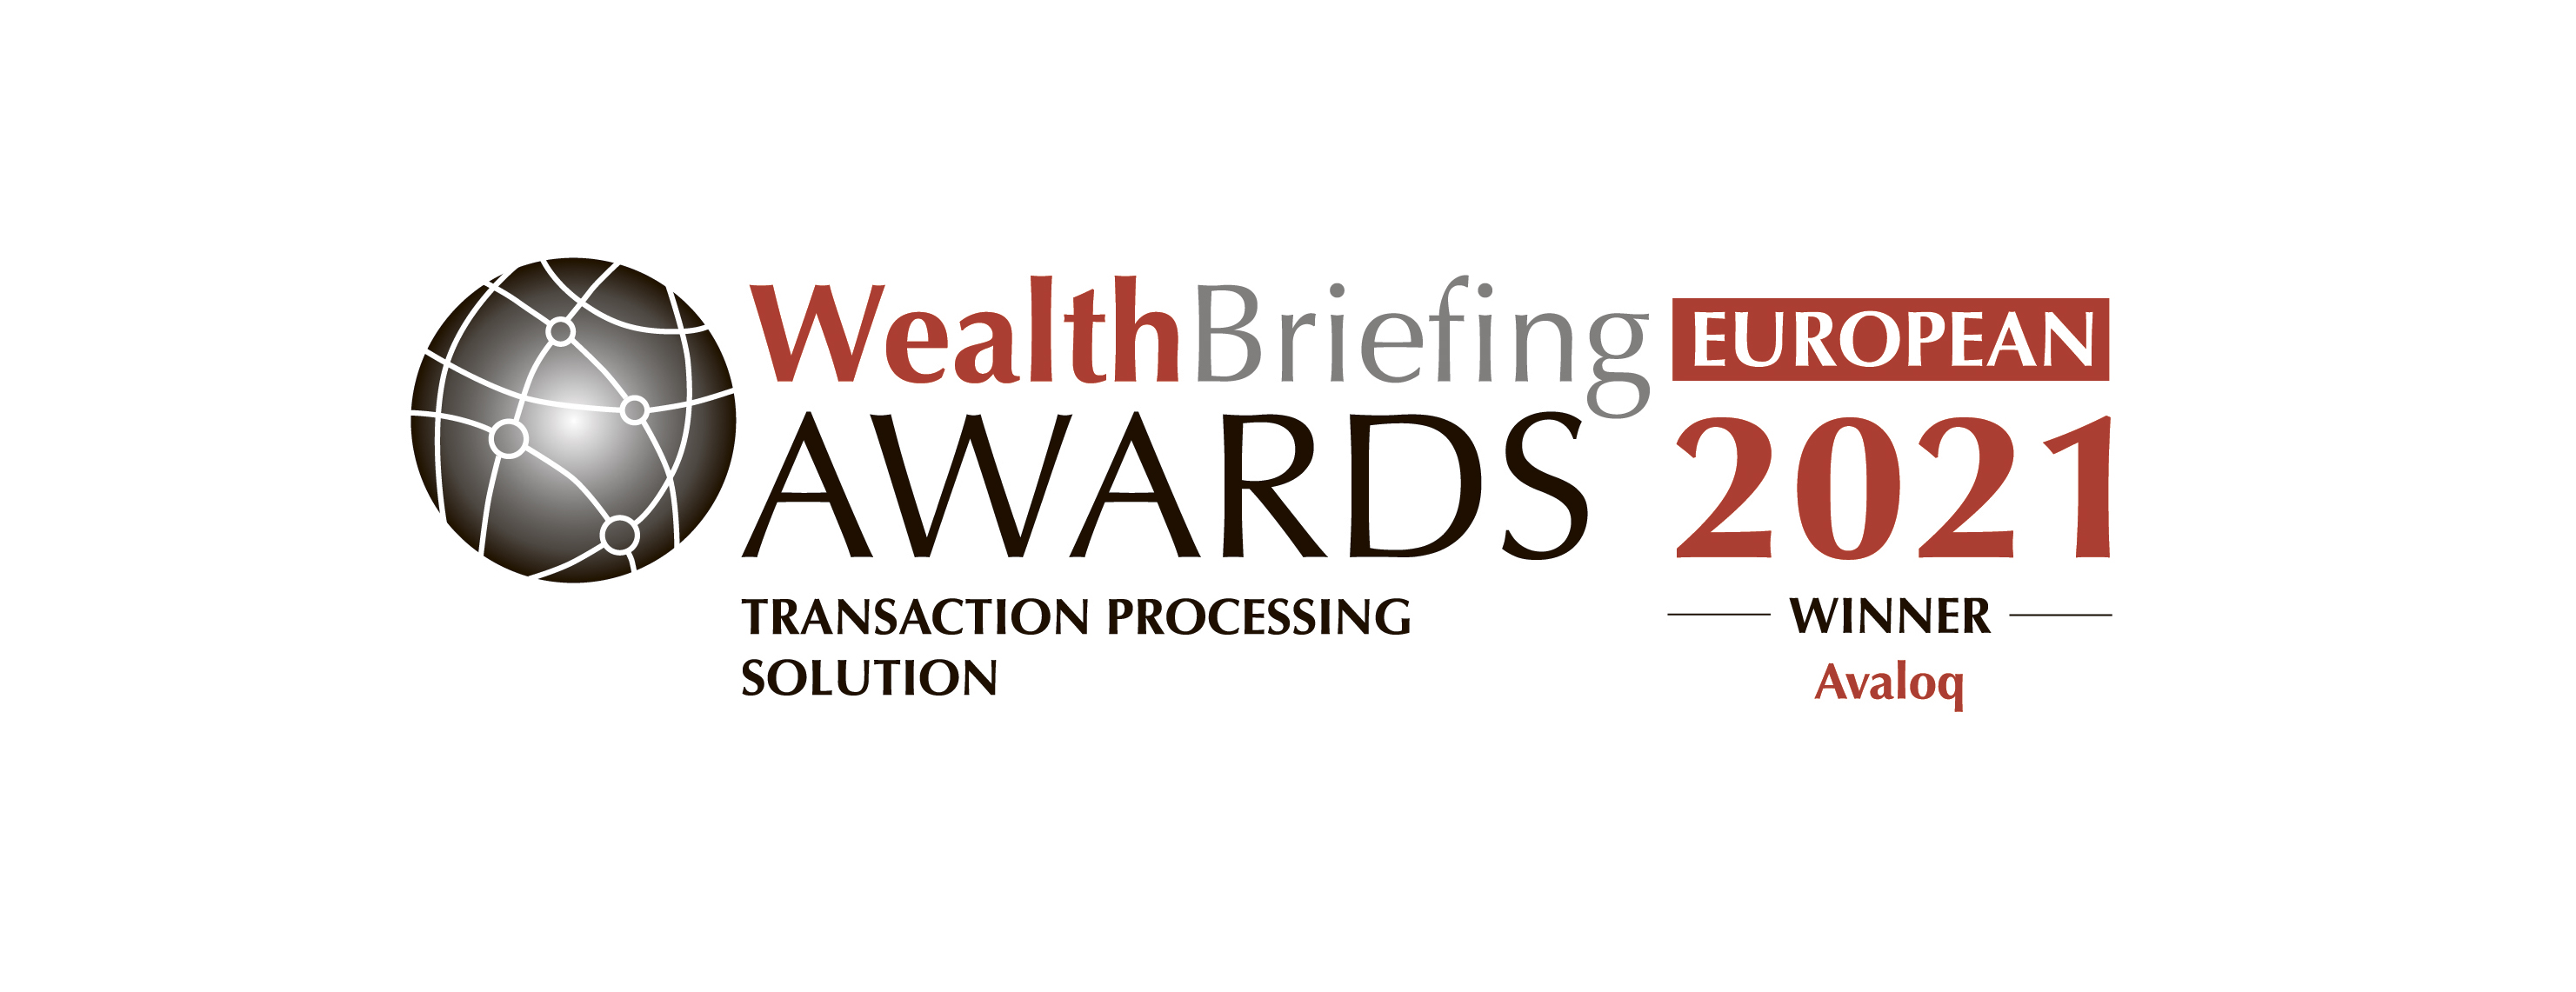 Avaloq wins European Wealth Management Transaction Processing Solution Award for Excellence